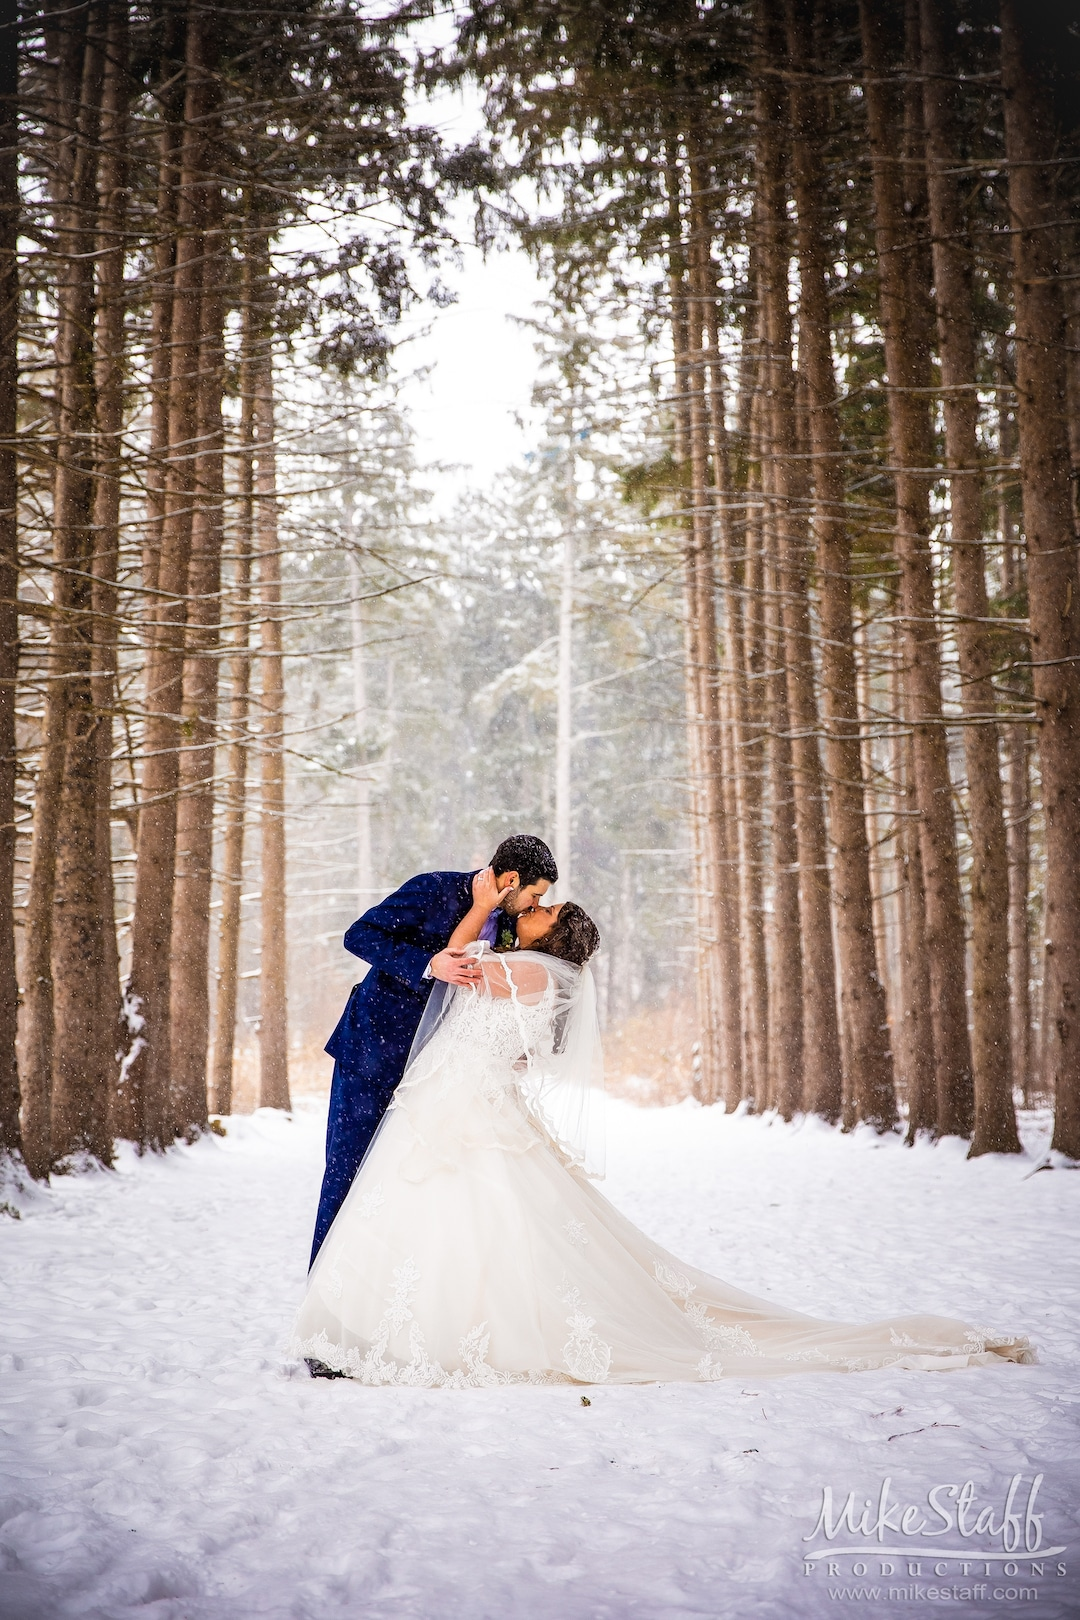 groom kissing bride outside in snow and woods